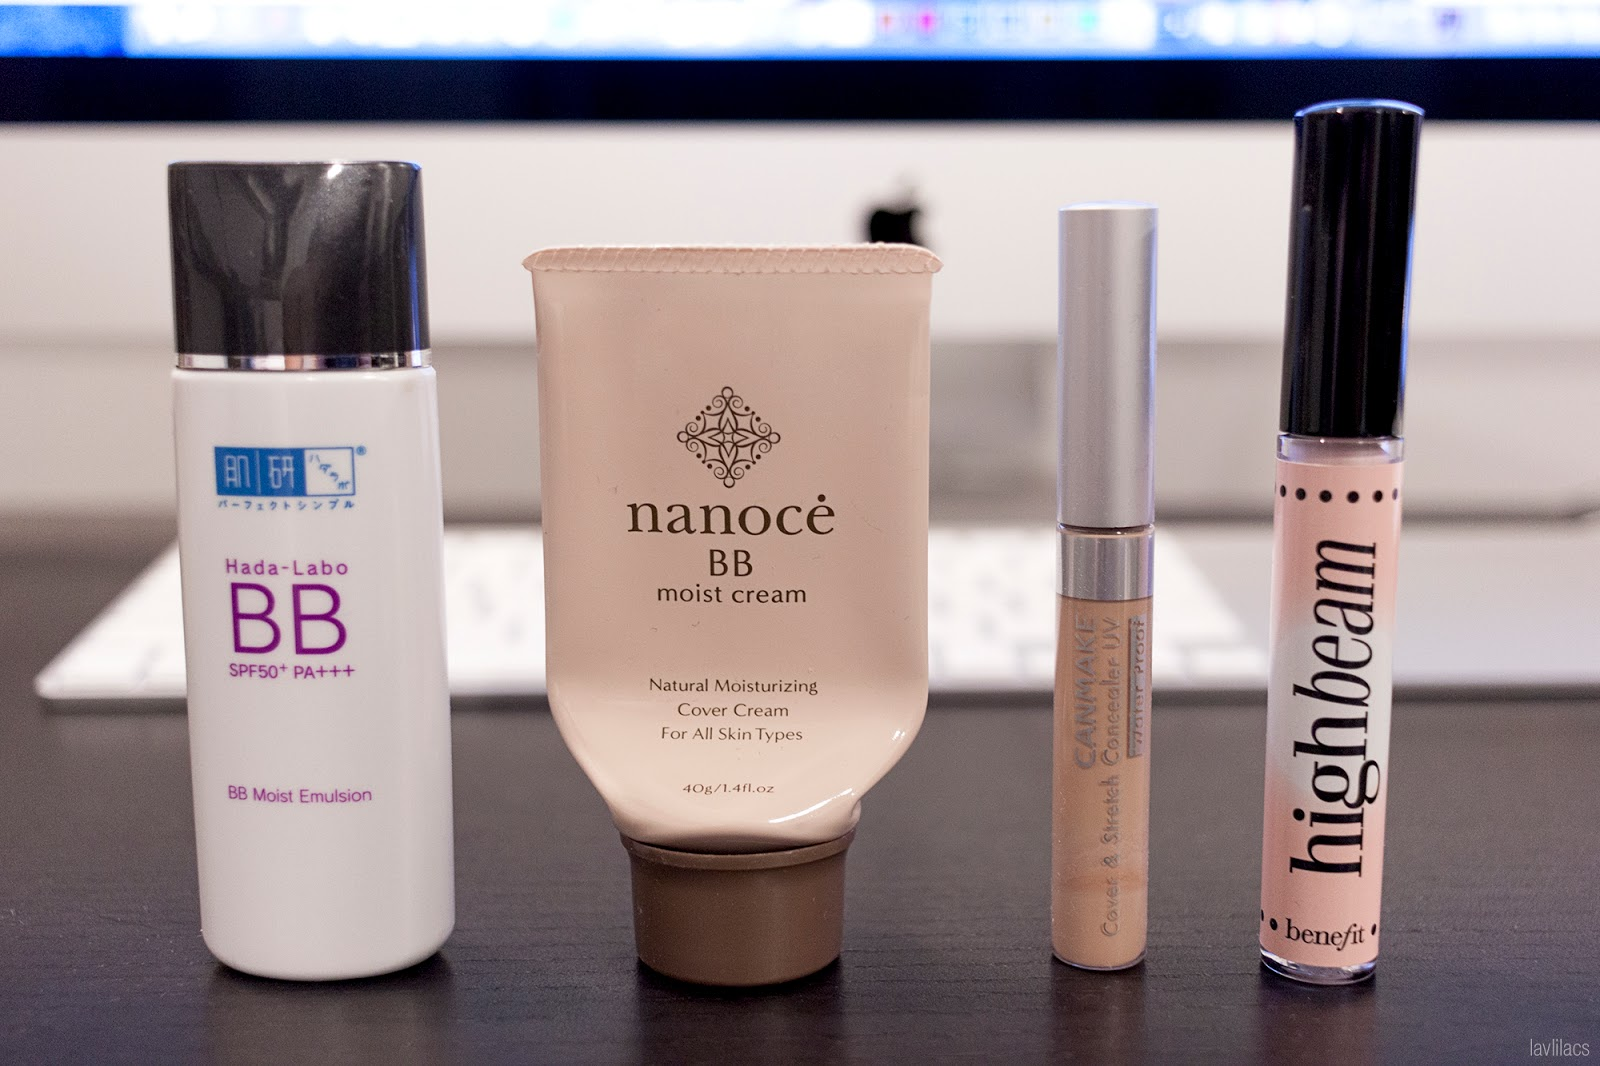 Hada Labo BB Moist Emulsion, Nanoce BB Cream, Canmake Cover & Stretch Concealer UV, Benefit Highbeam highlighter end results